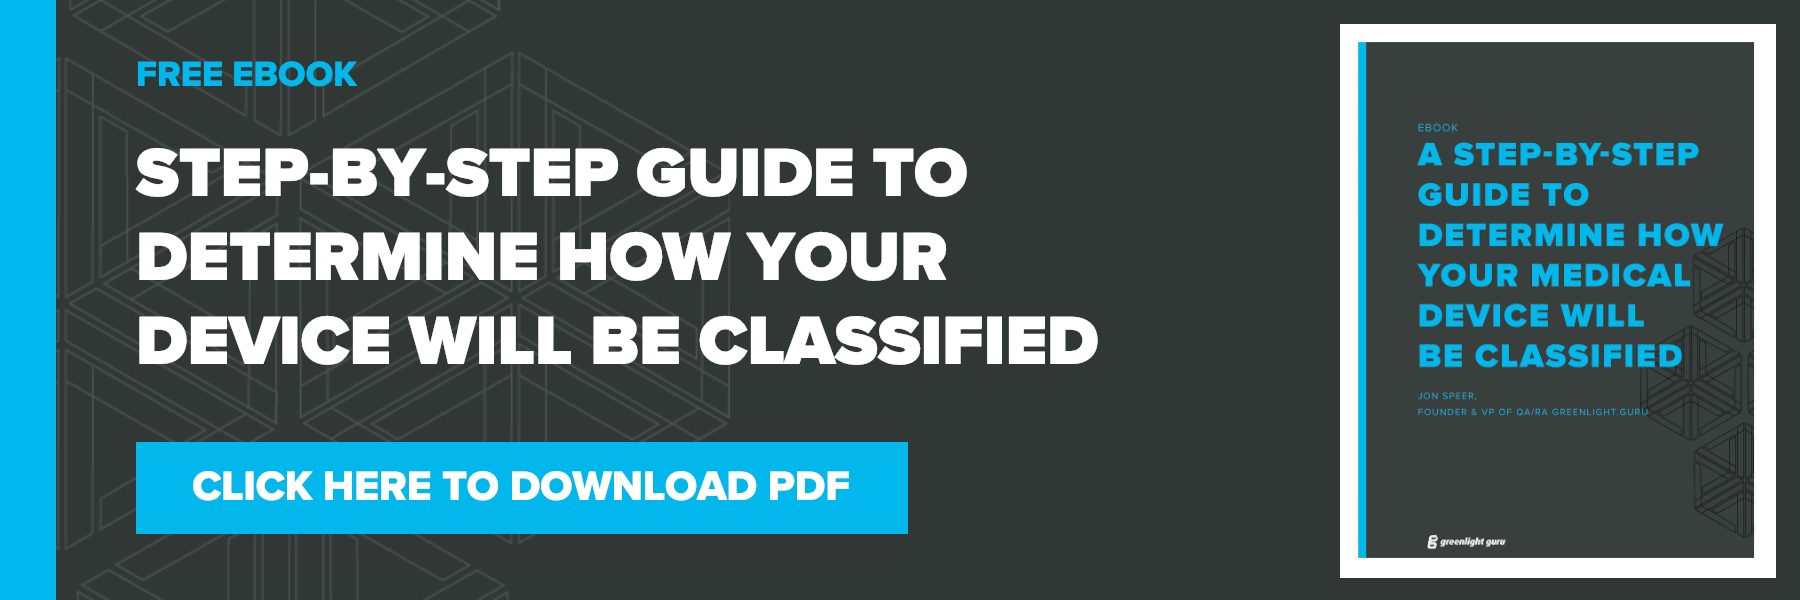 Medical Device Classification How Your Will Be Wiring Simplified Pdf Download Overview